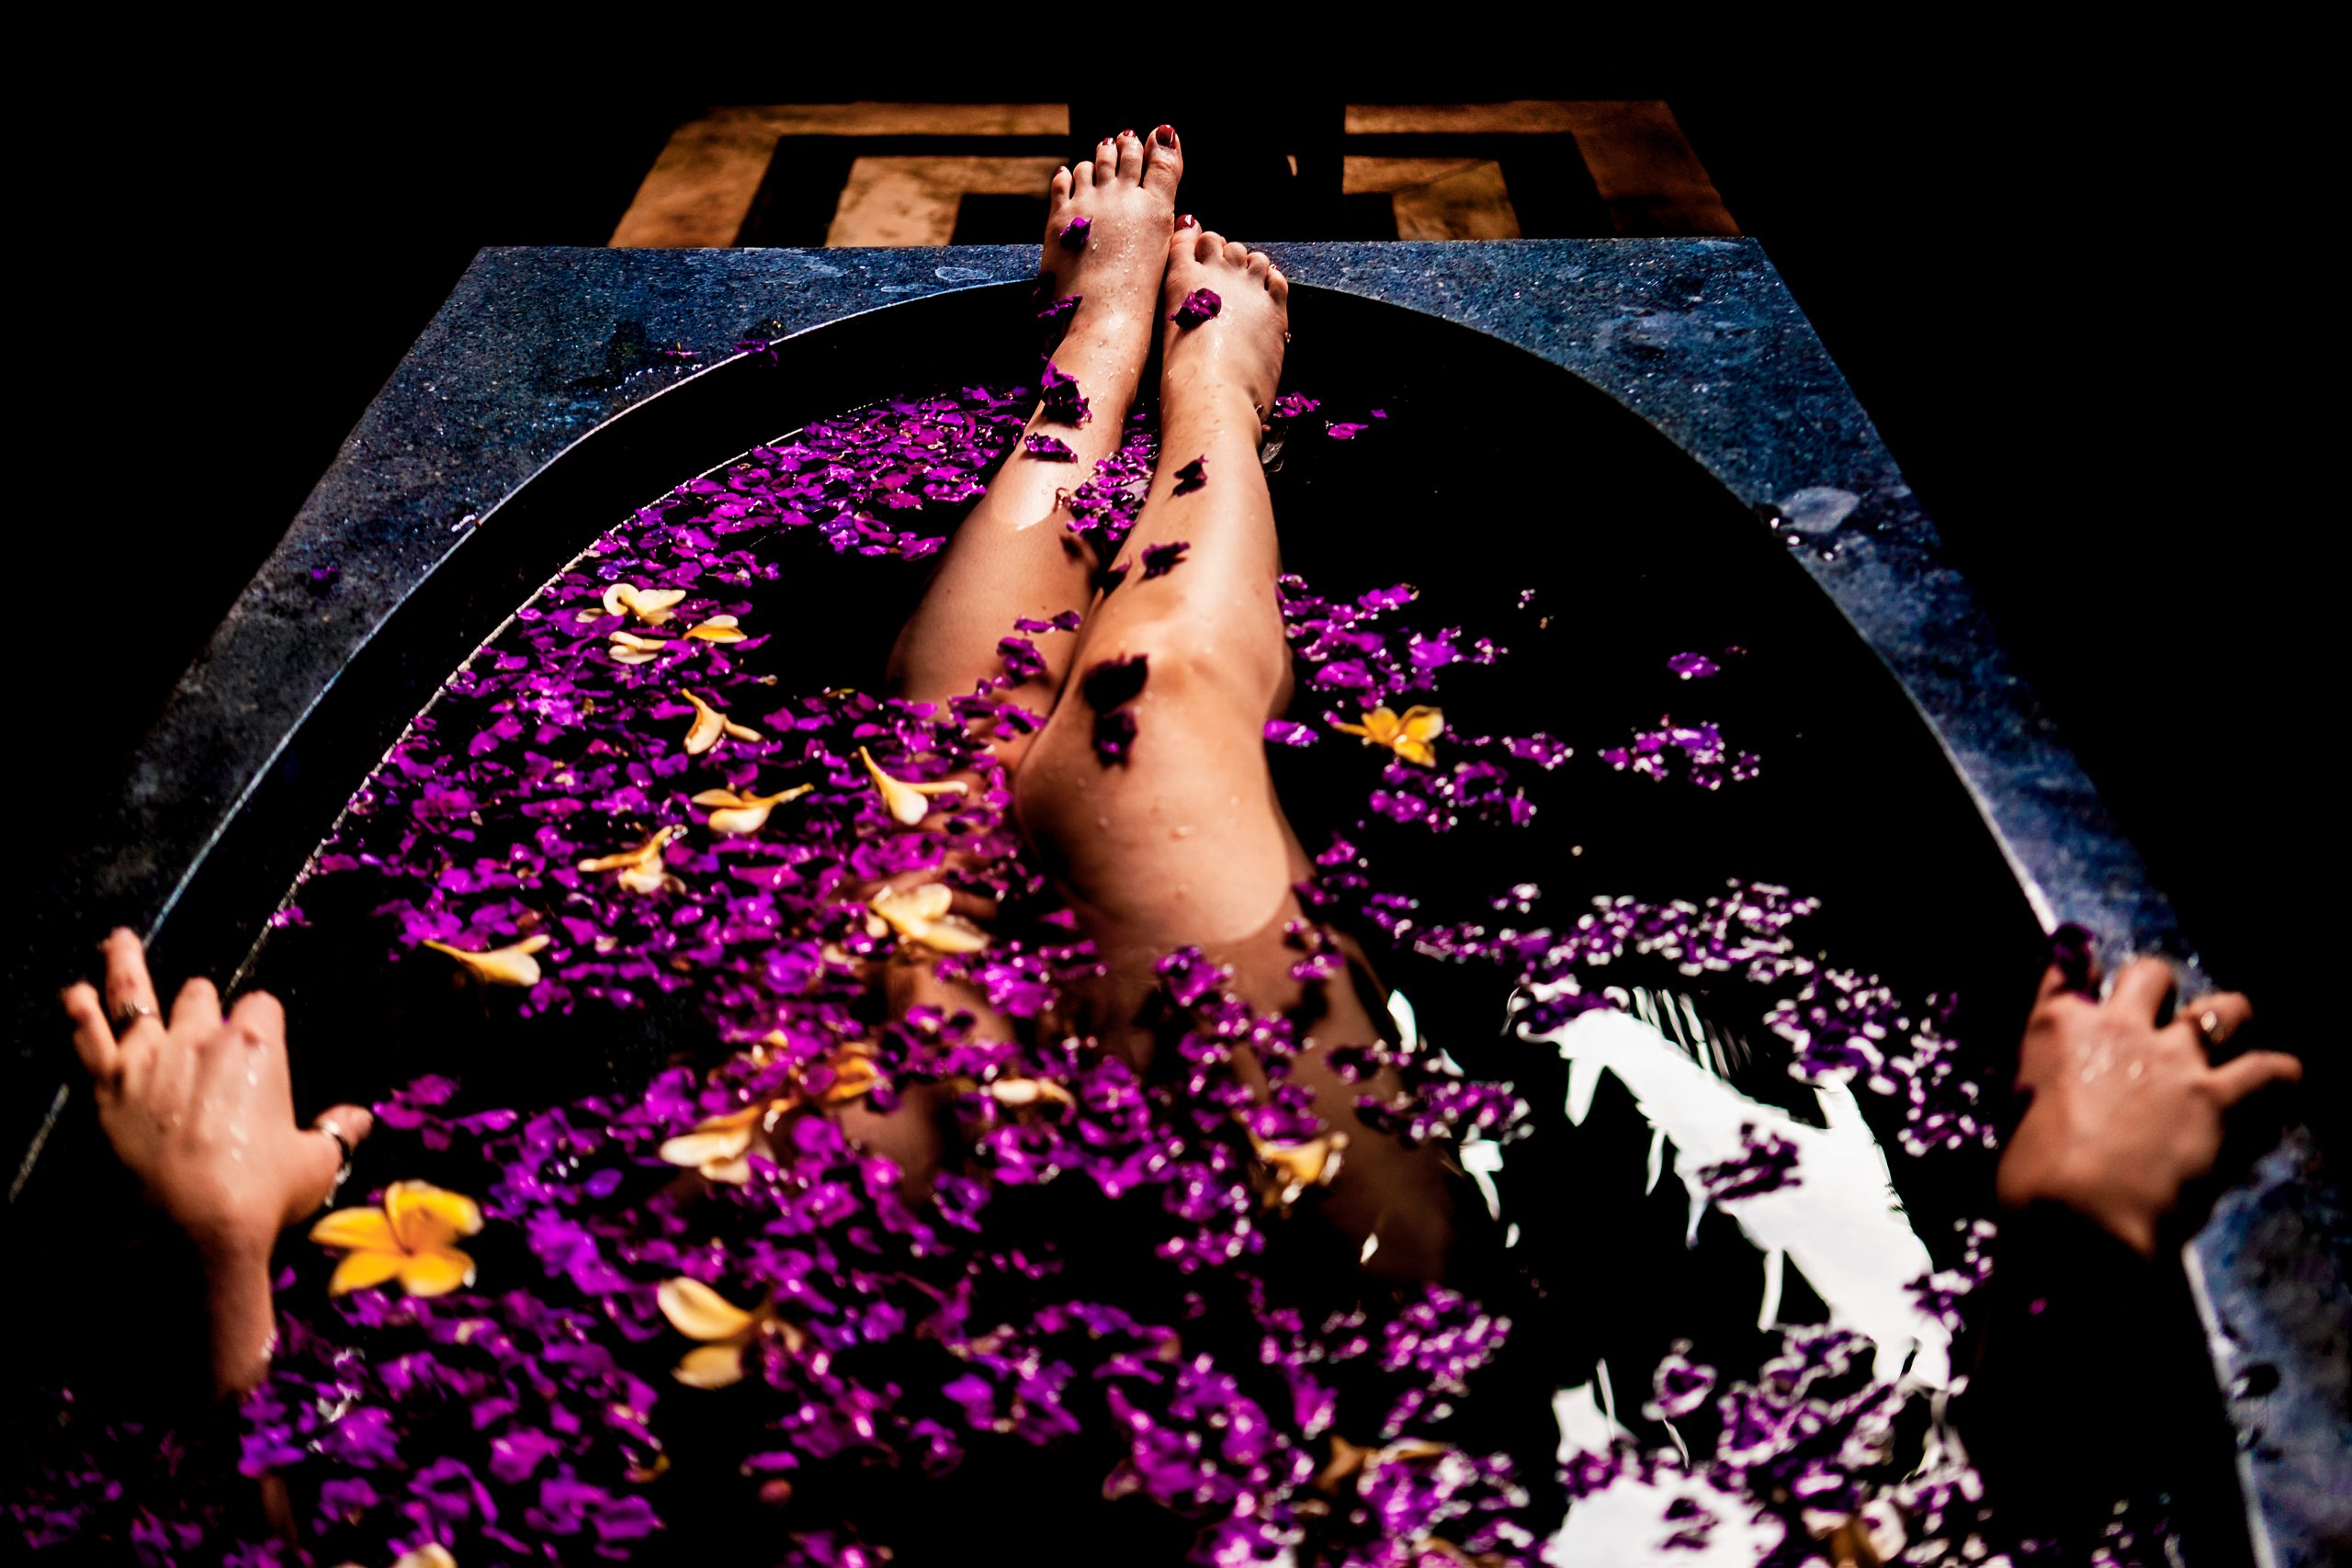 Woman sticks her legs out of a bathtub filled with flowers